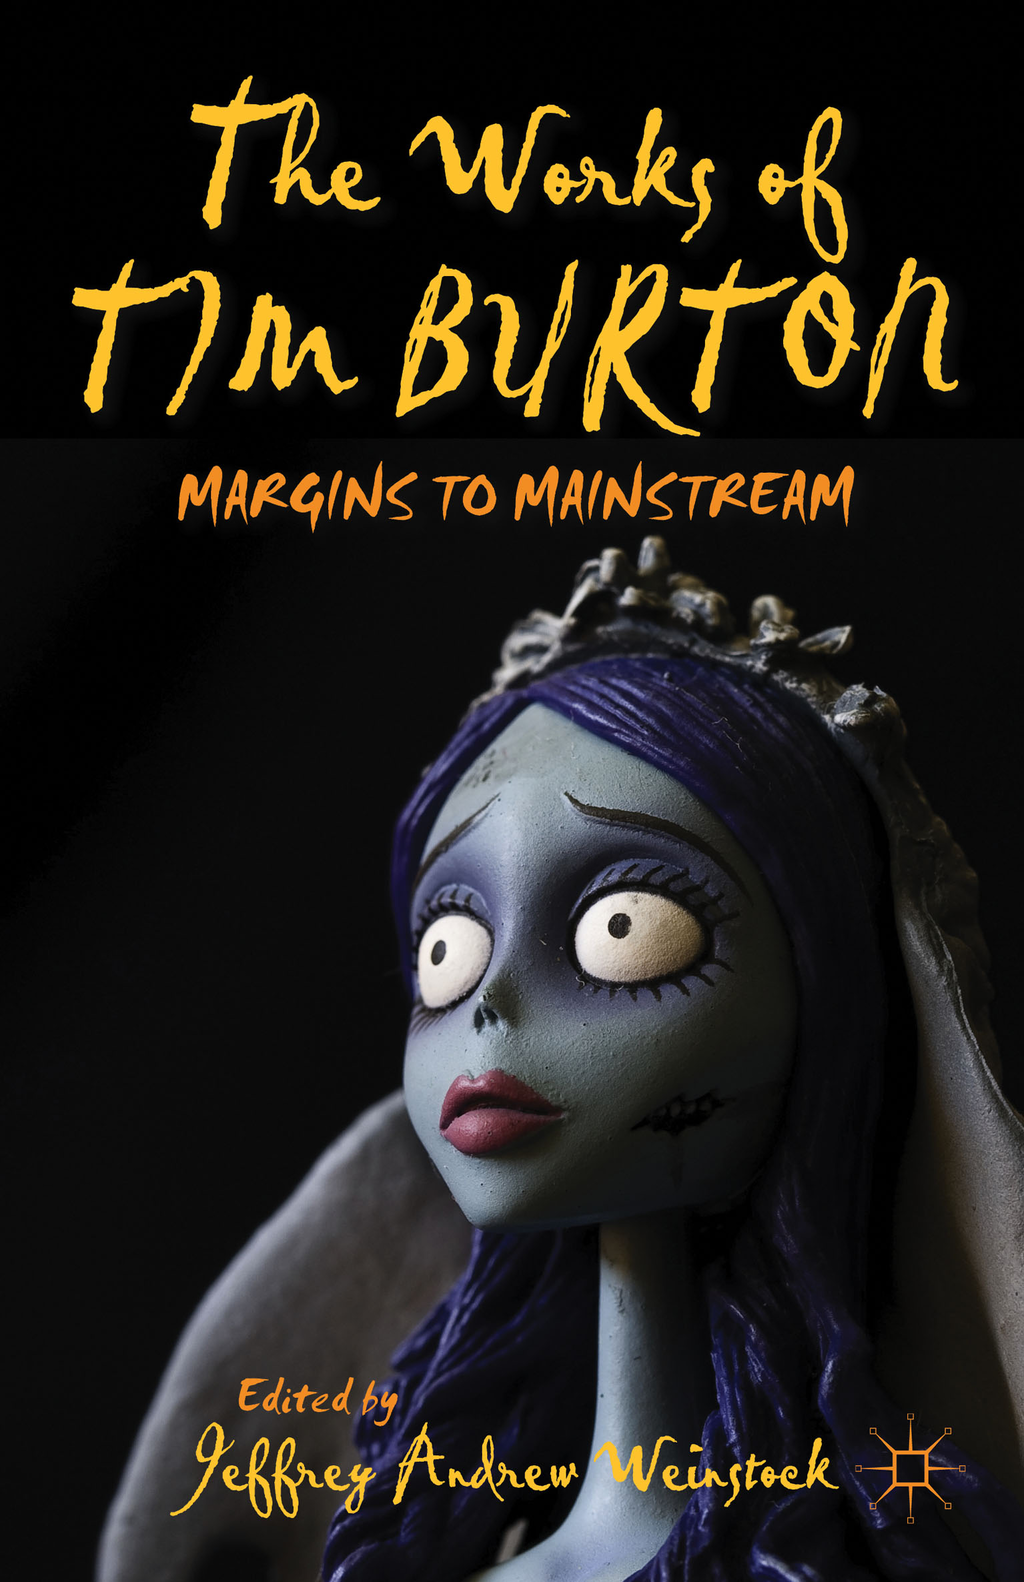 The Works of Tim Burton Margins to Mainstream